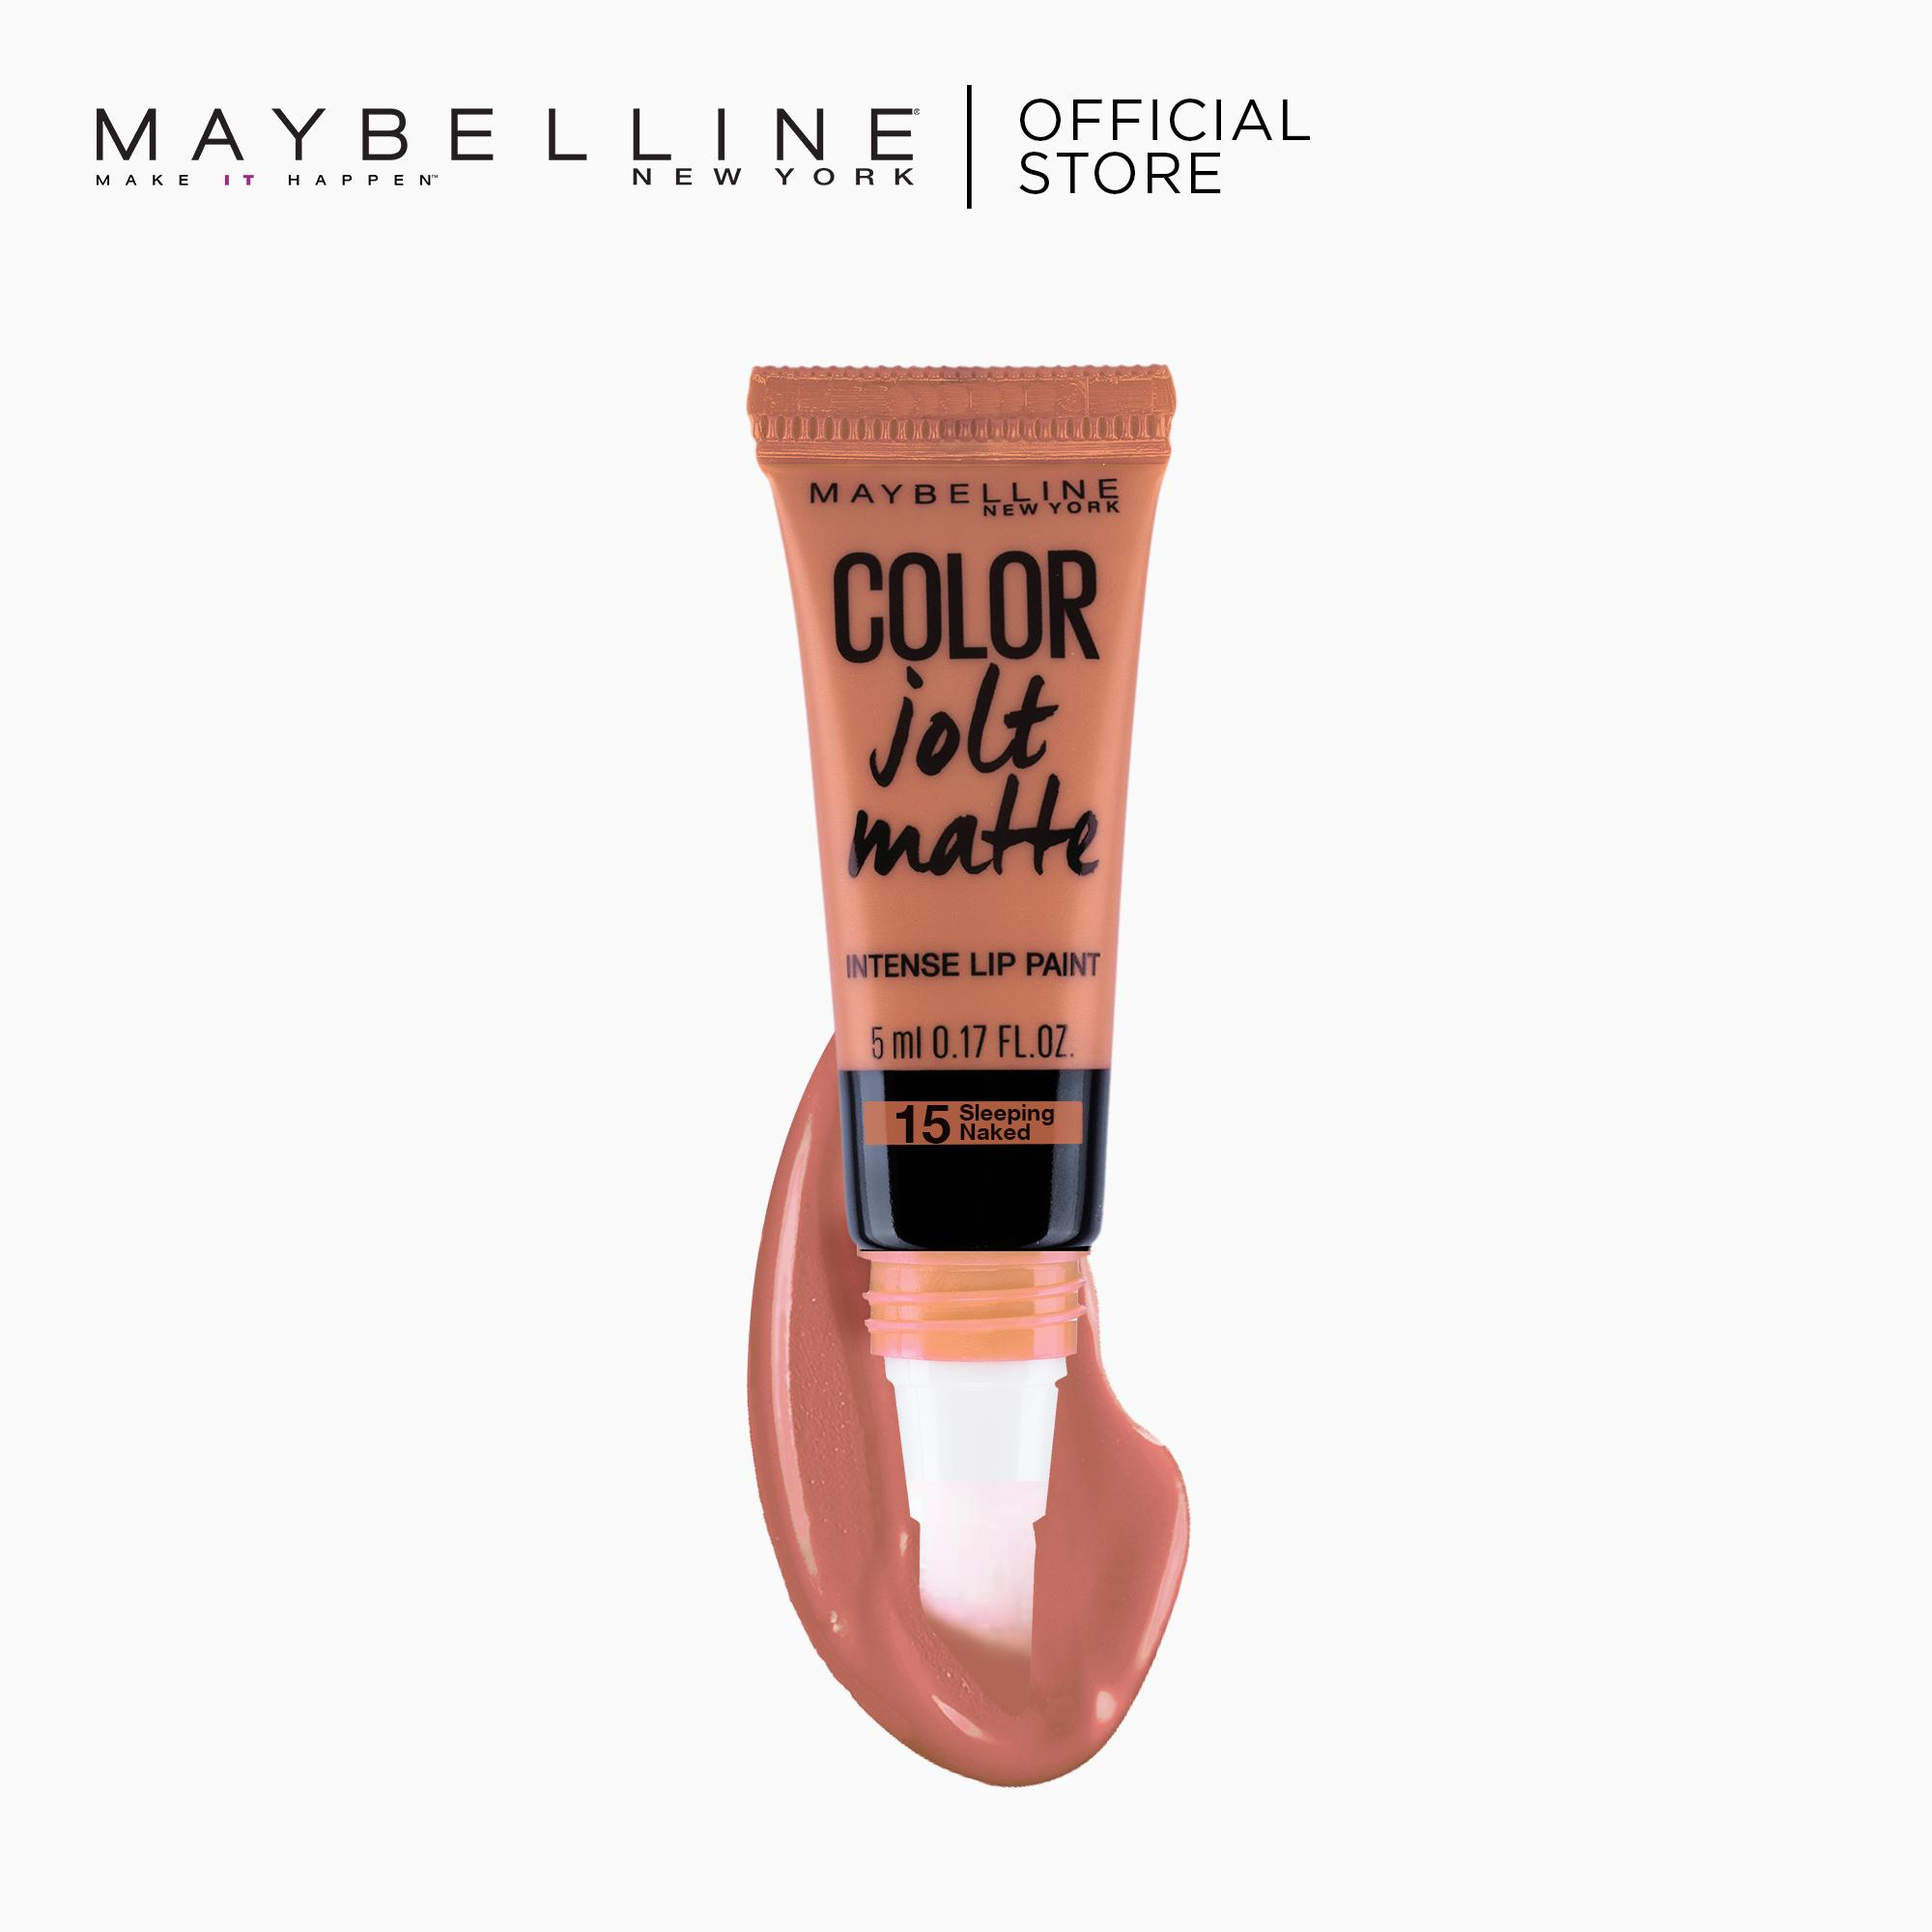 Color Jolt Matte Lip Paint – 15 Sleeping Naked [#PaintItMatte] by Maybelline Lip Studio Philippines